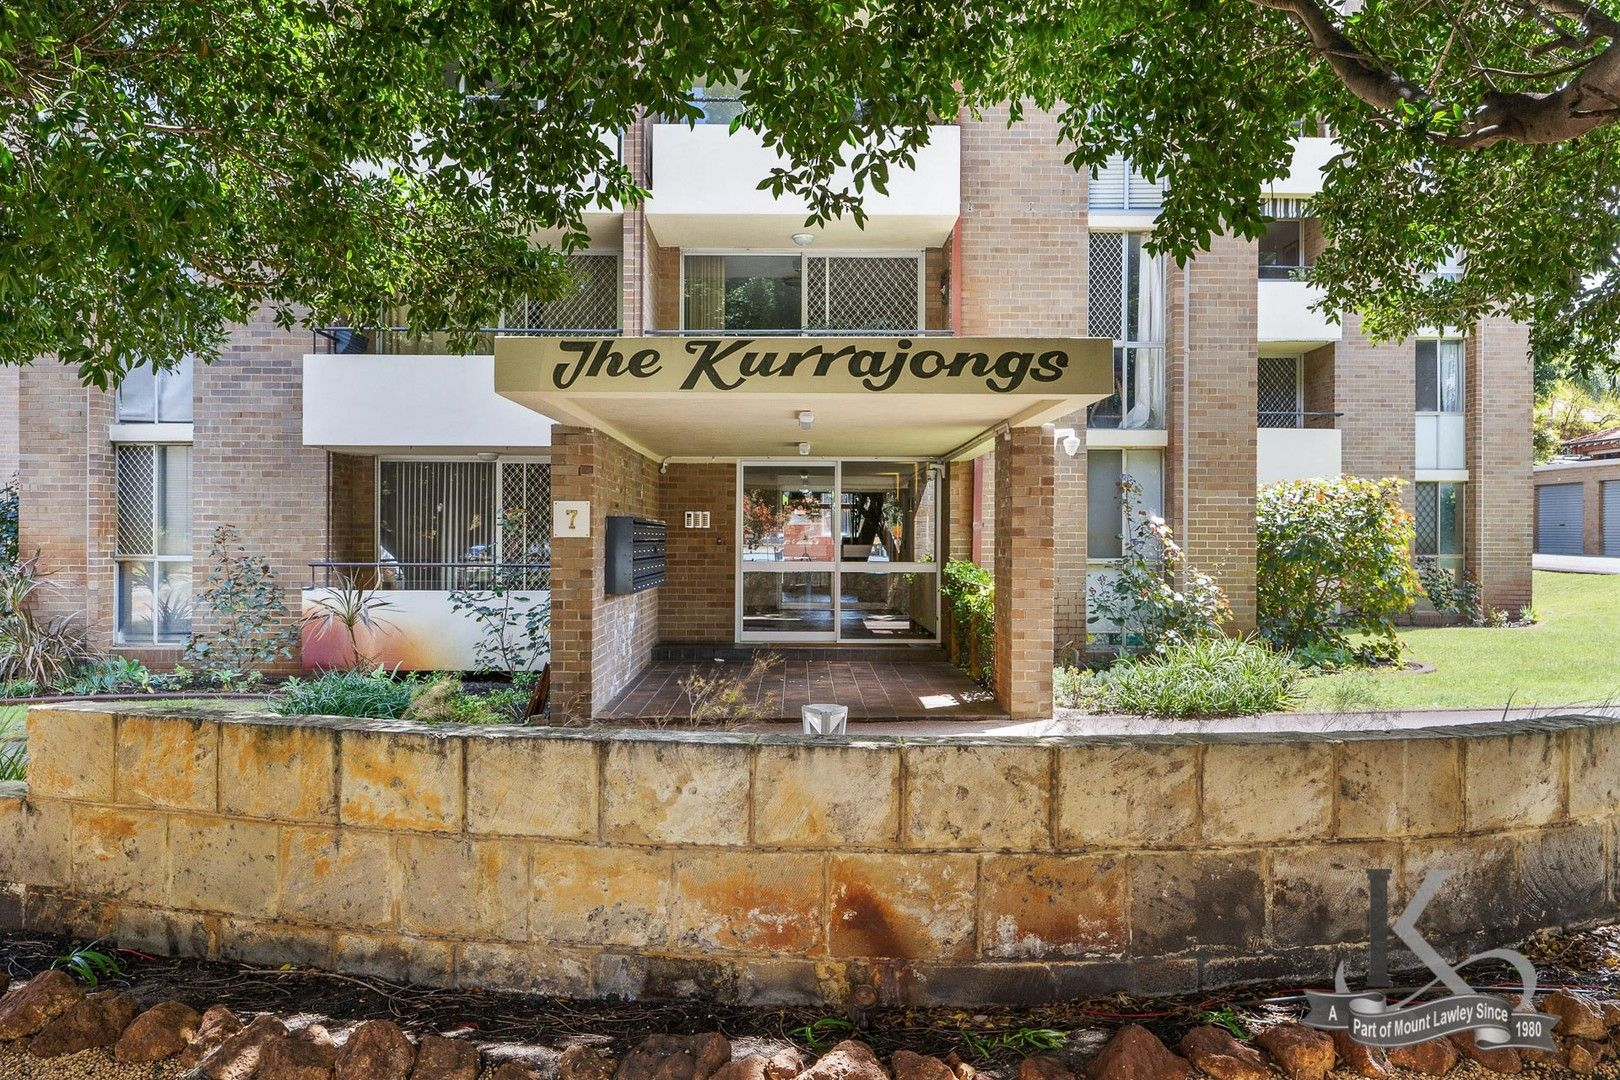 2 bedrooms Apartment / Unit / Flat in 15/7 Clifton Crescent MOUNT LAWLEY WA, 6050